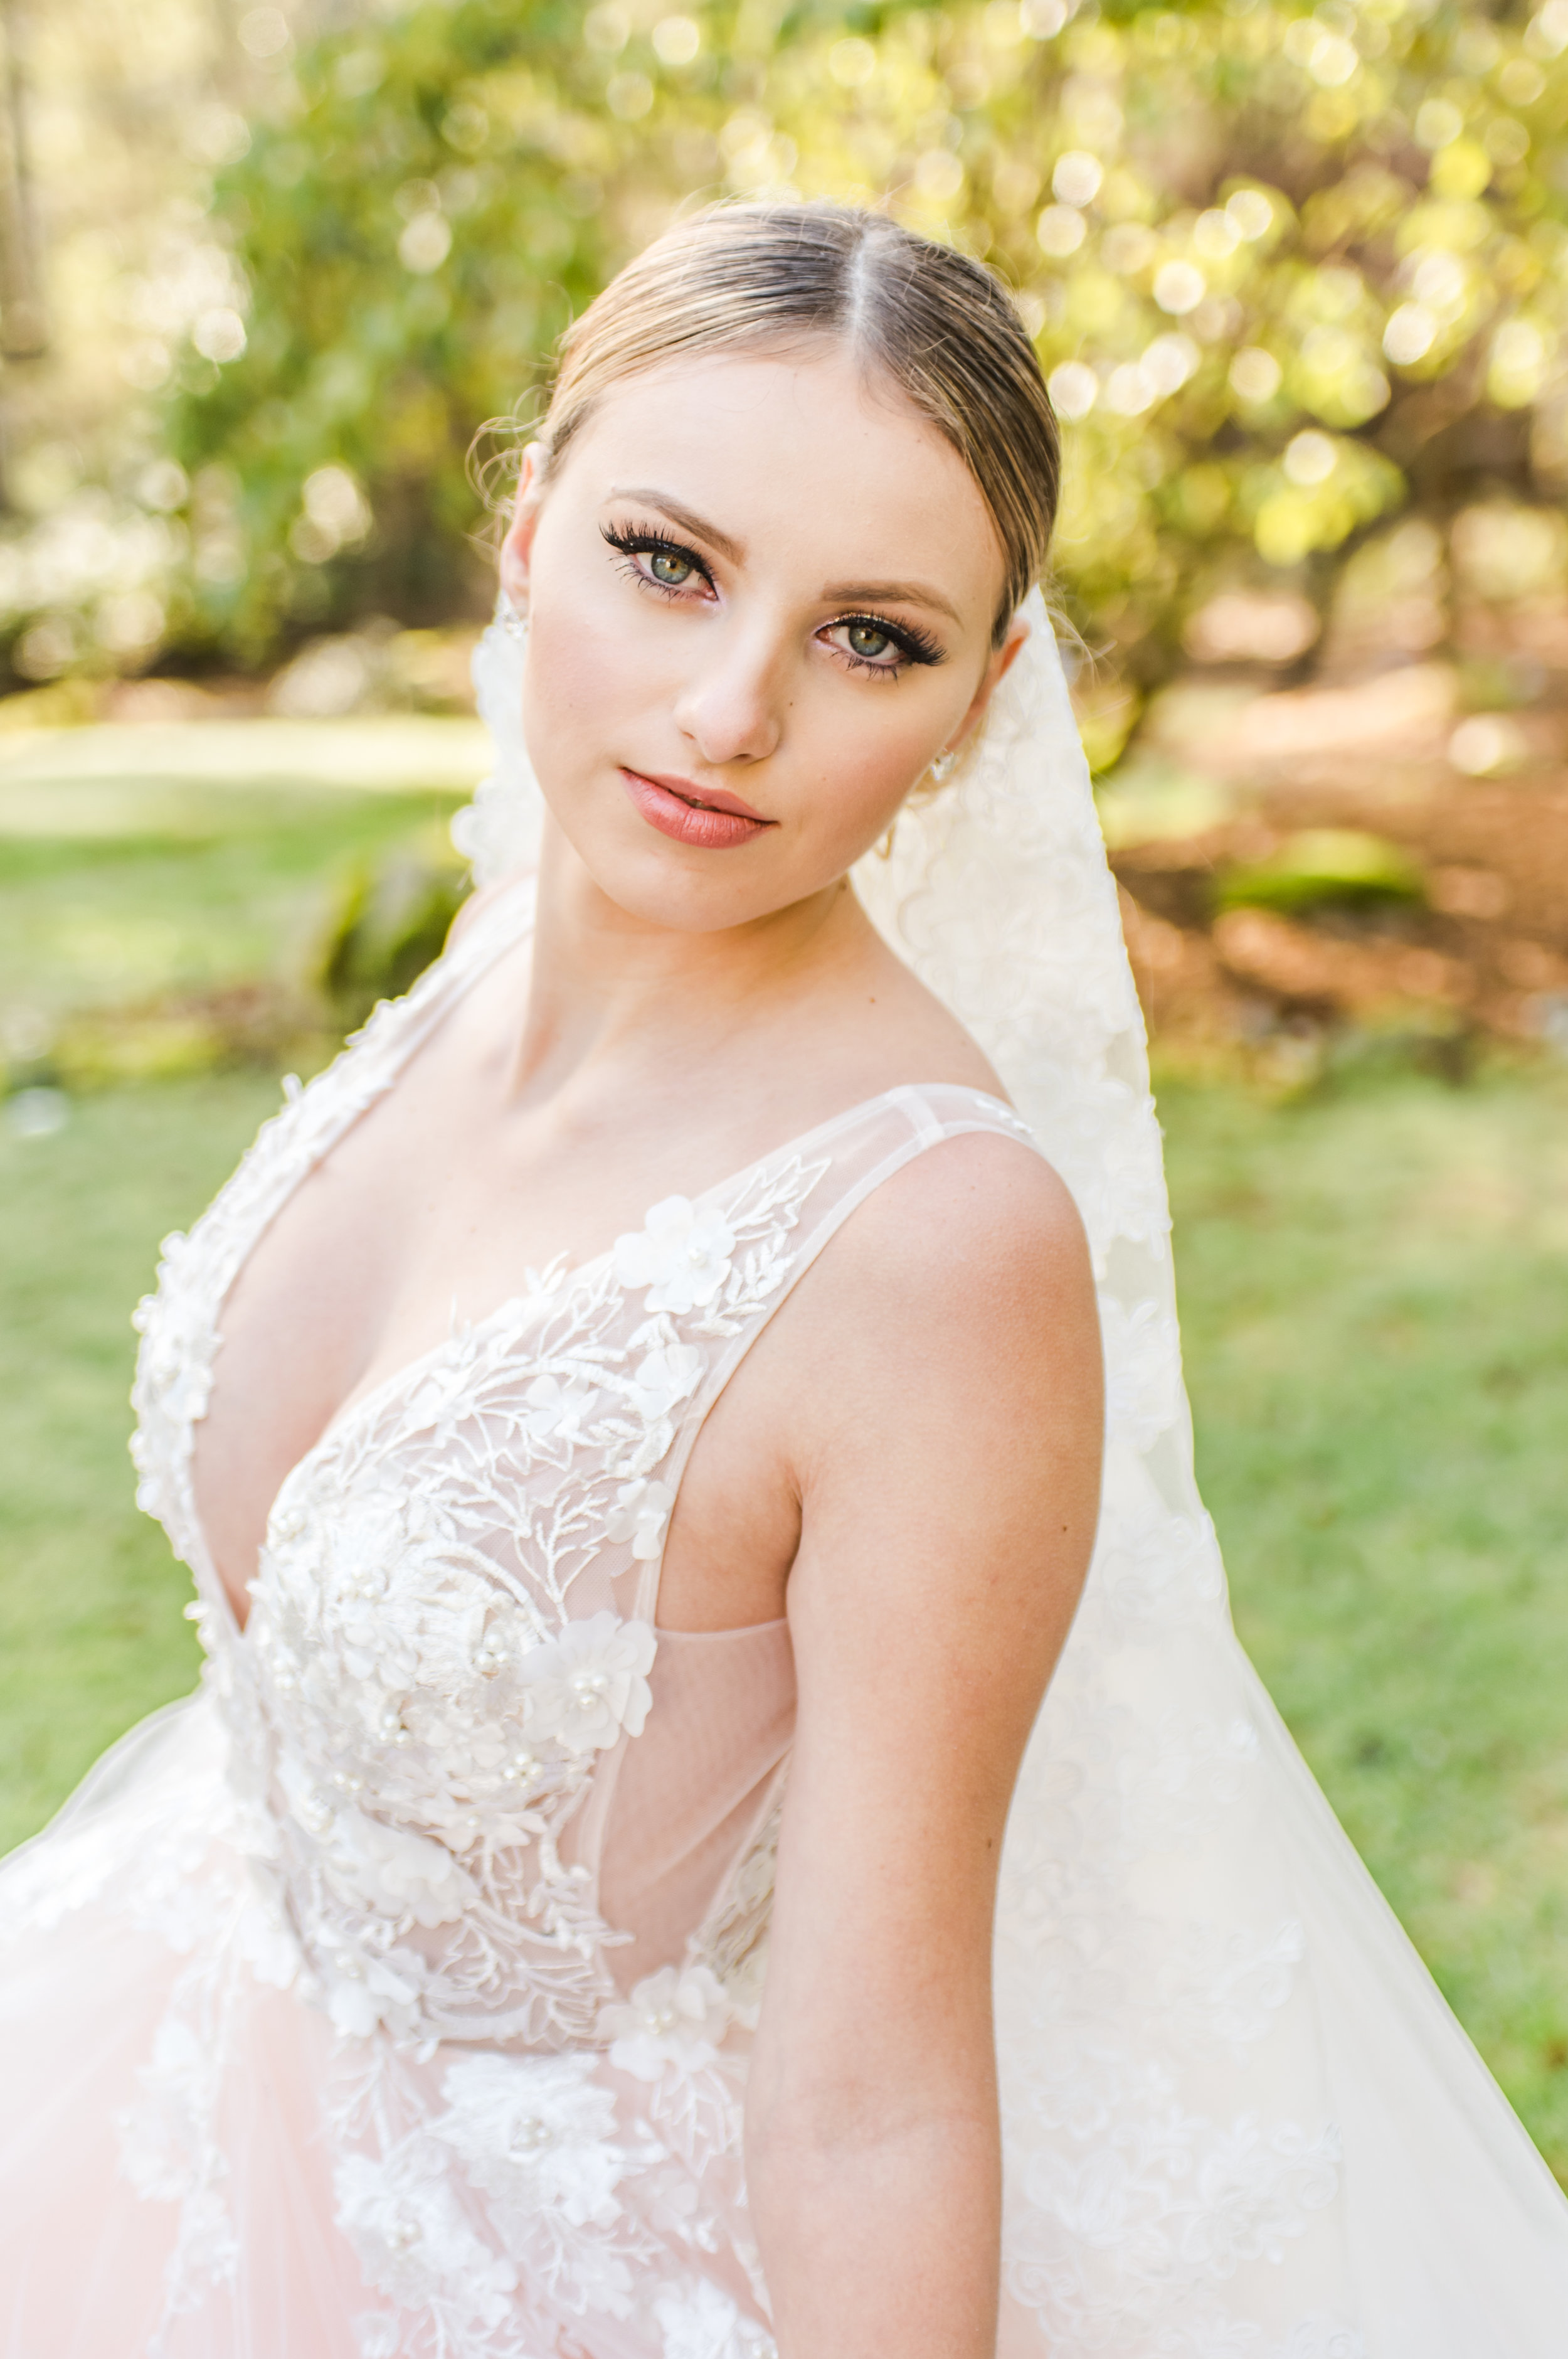 Bride smirks at camera in green yard